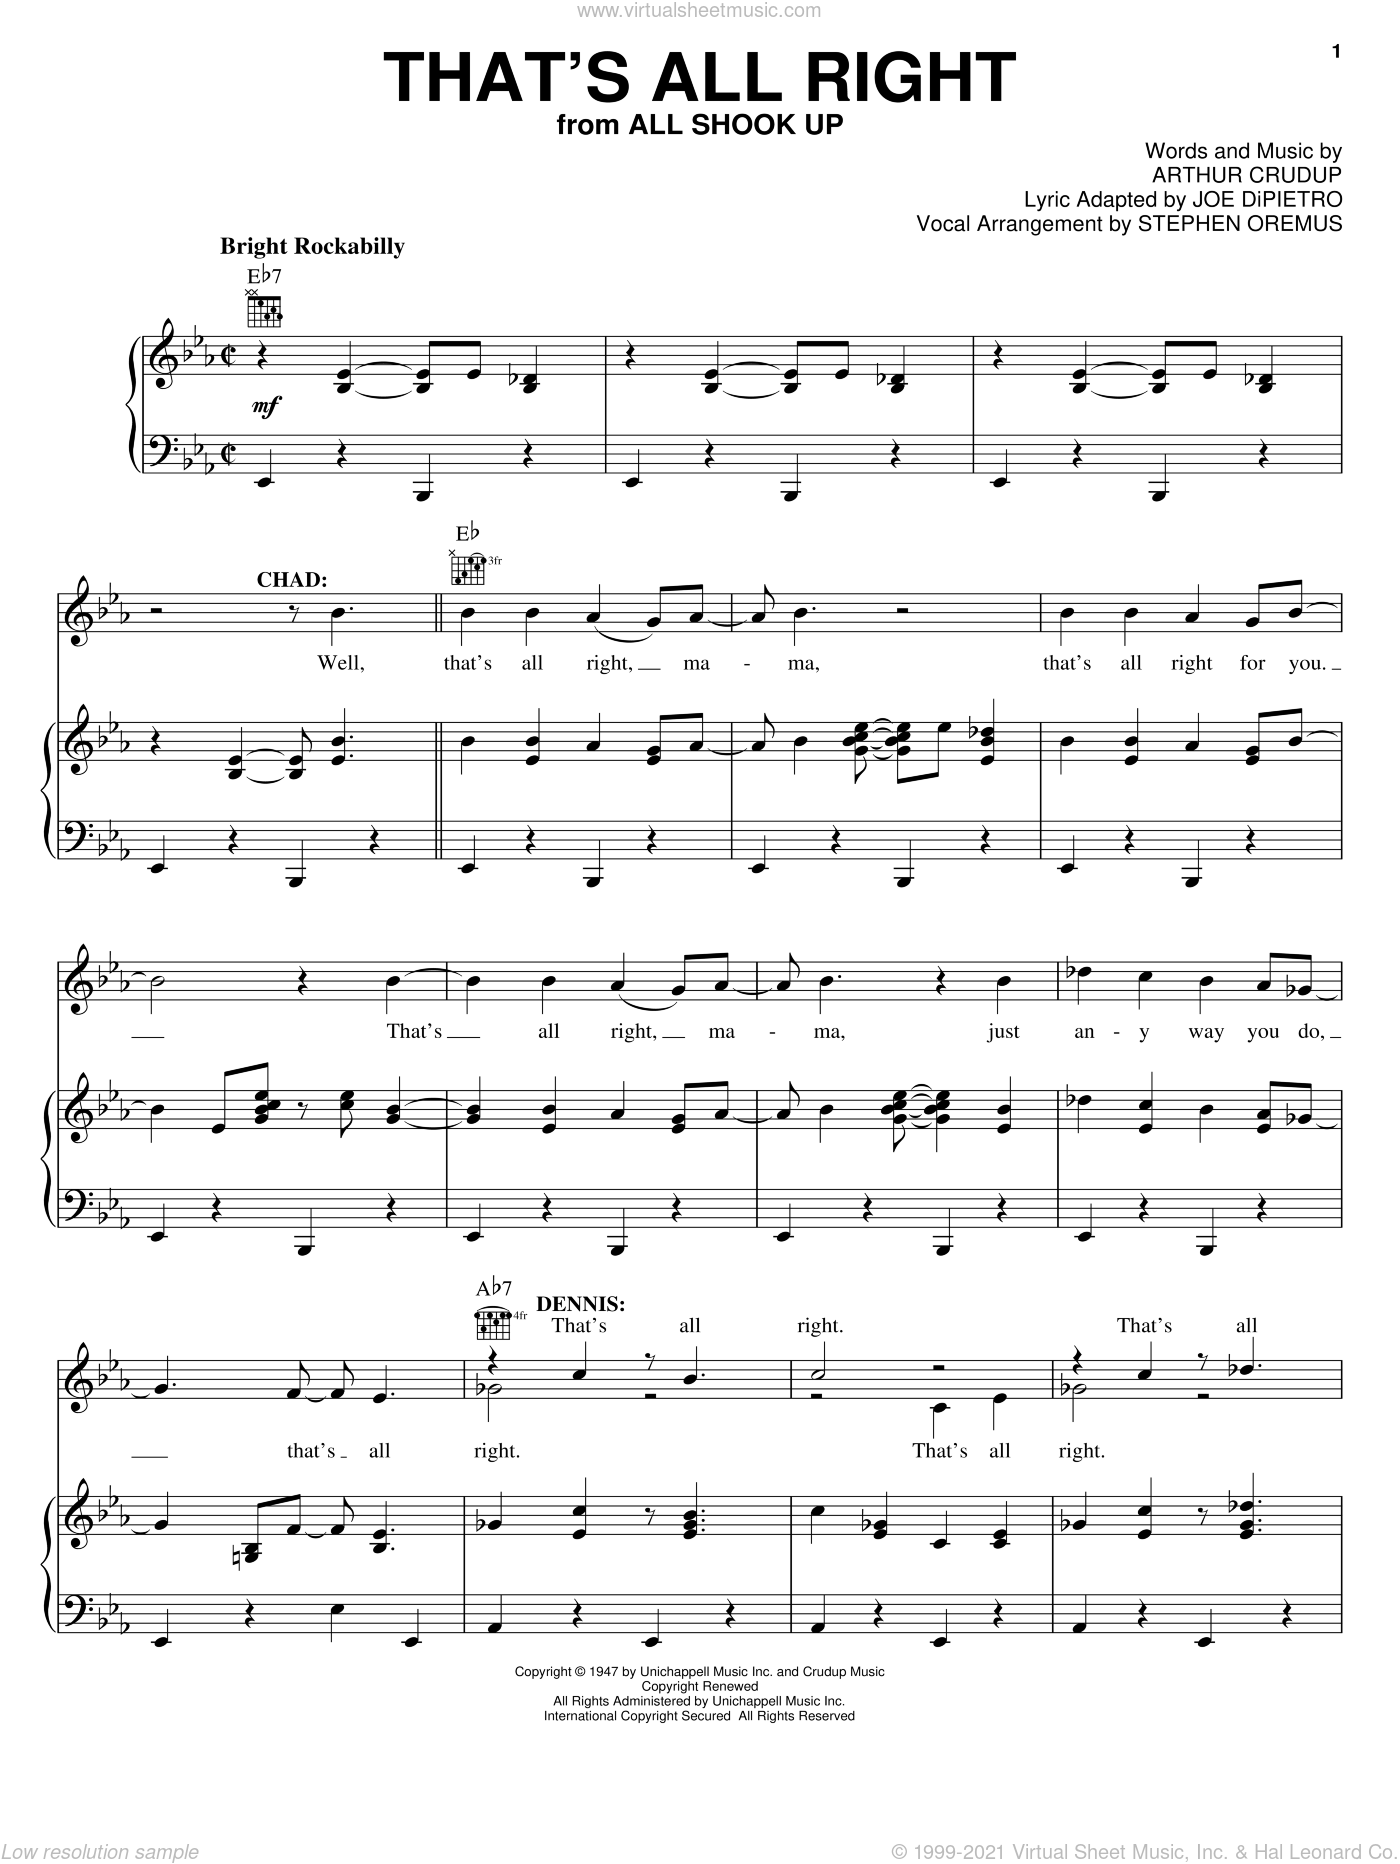 That's All Right sheet music for voice, piano or guitar by Arthur Crudup